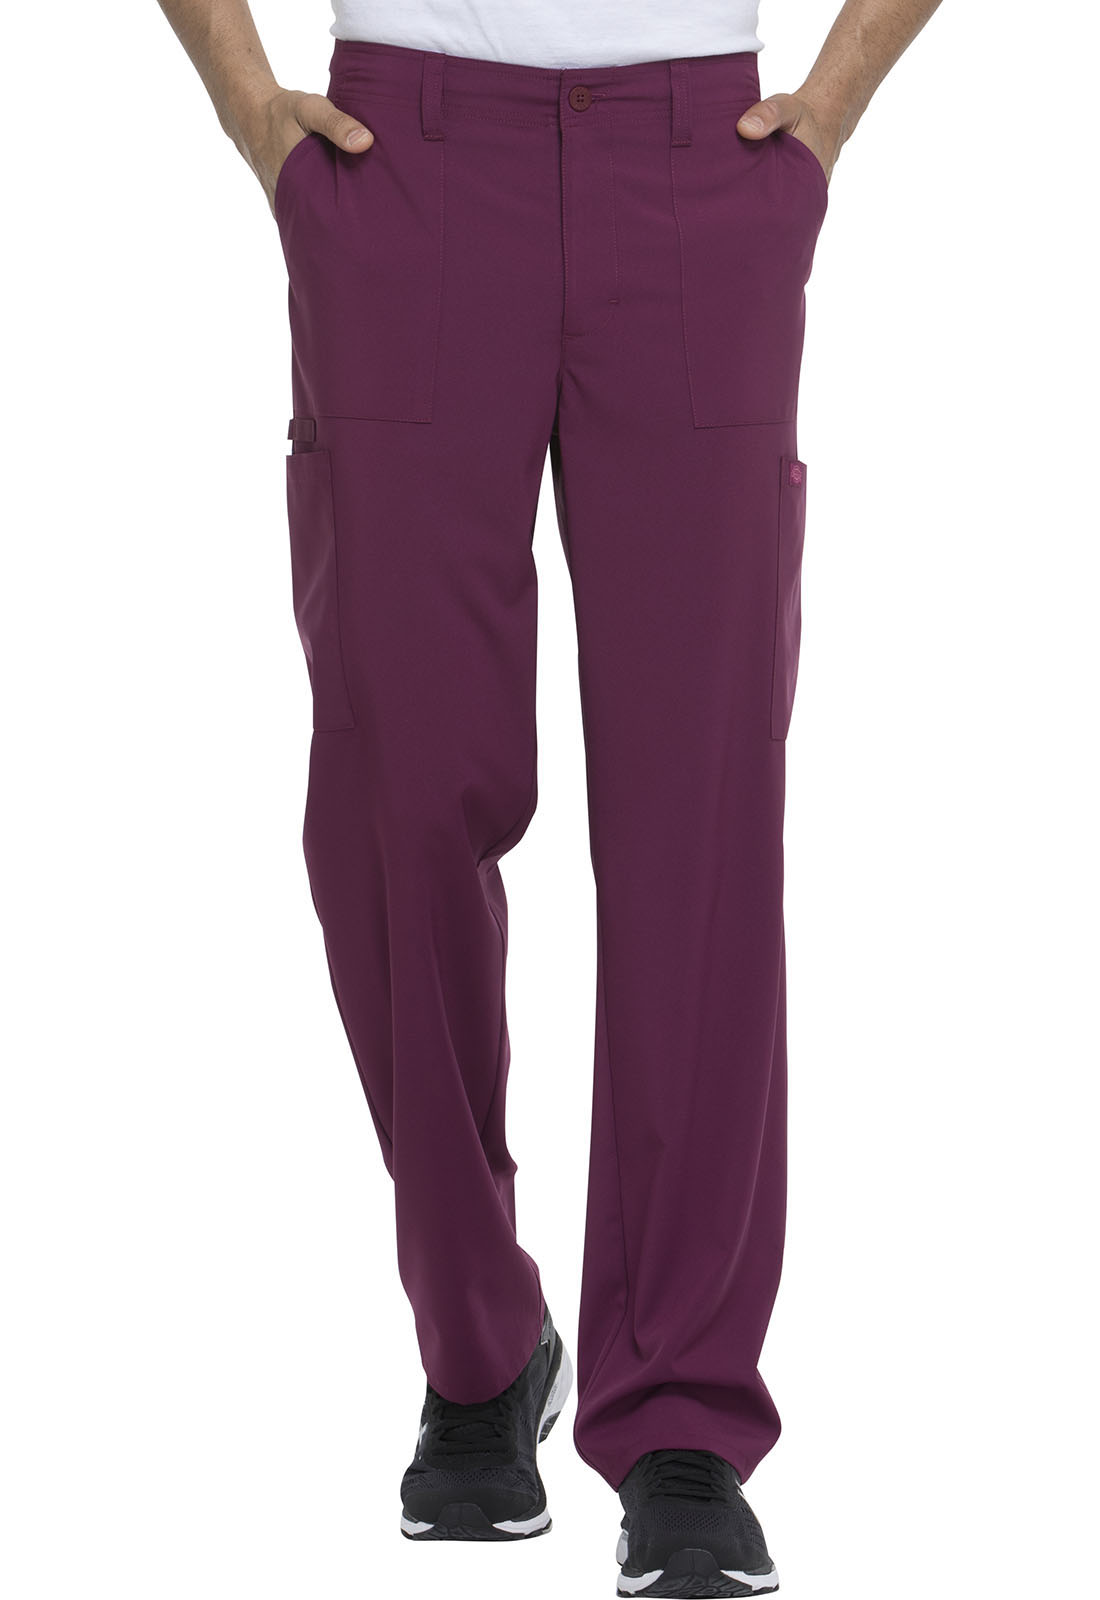 5eaceec9228 Dickies EDS Essentials Men's Natural Rise Drawstring Pant in Wine ...